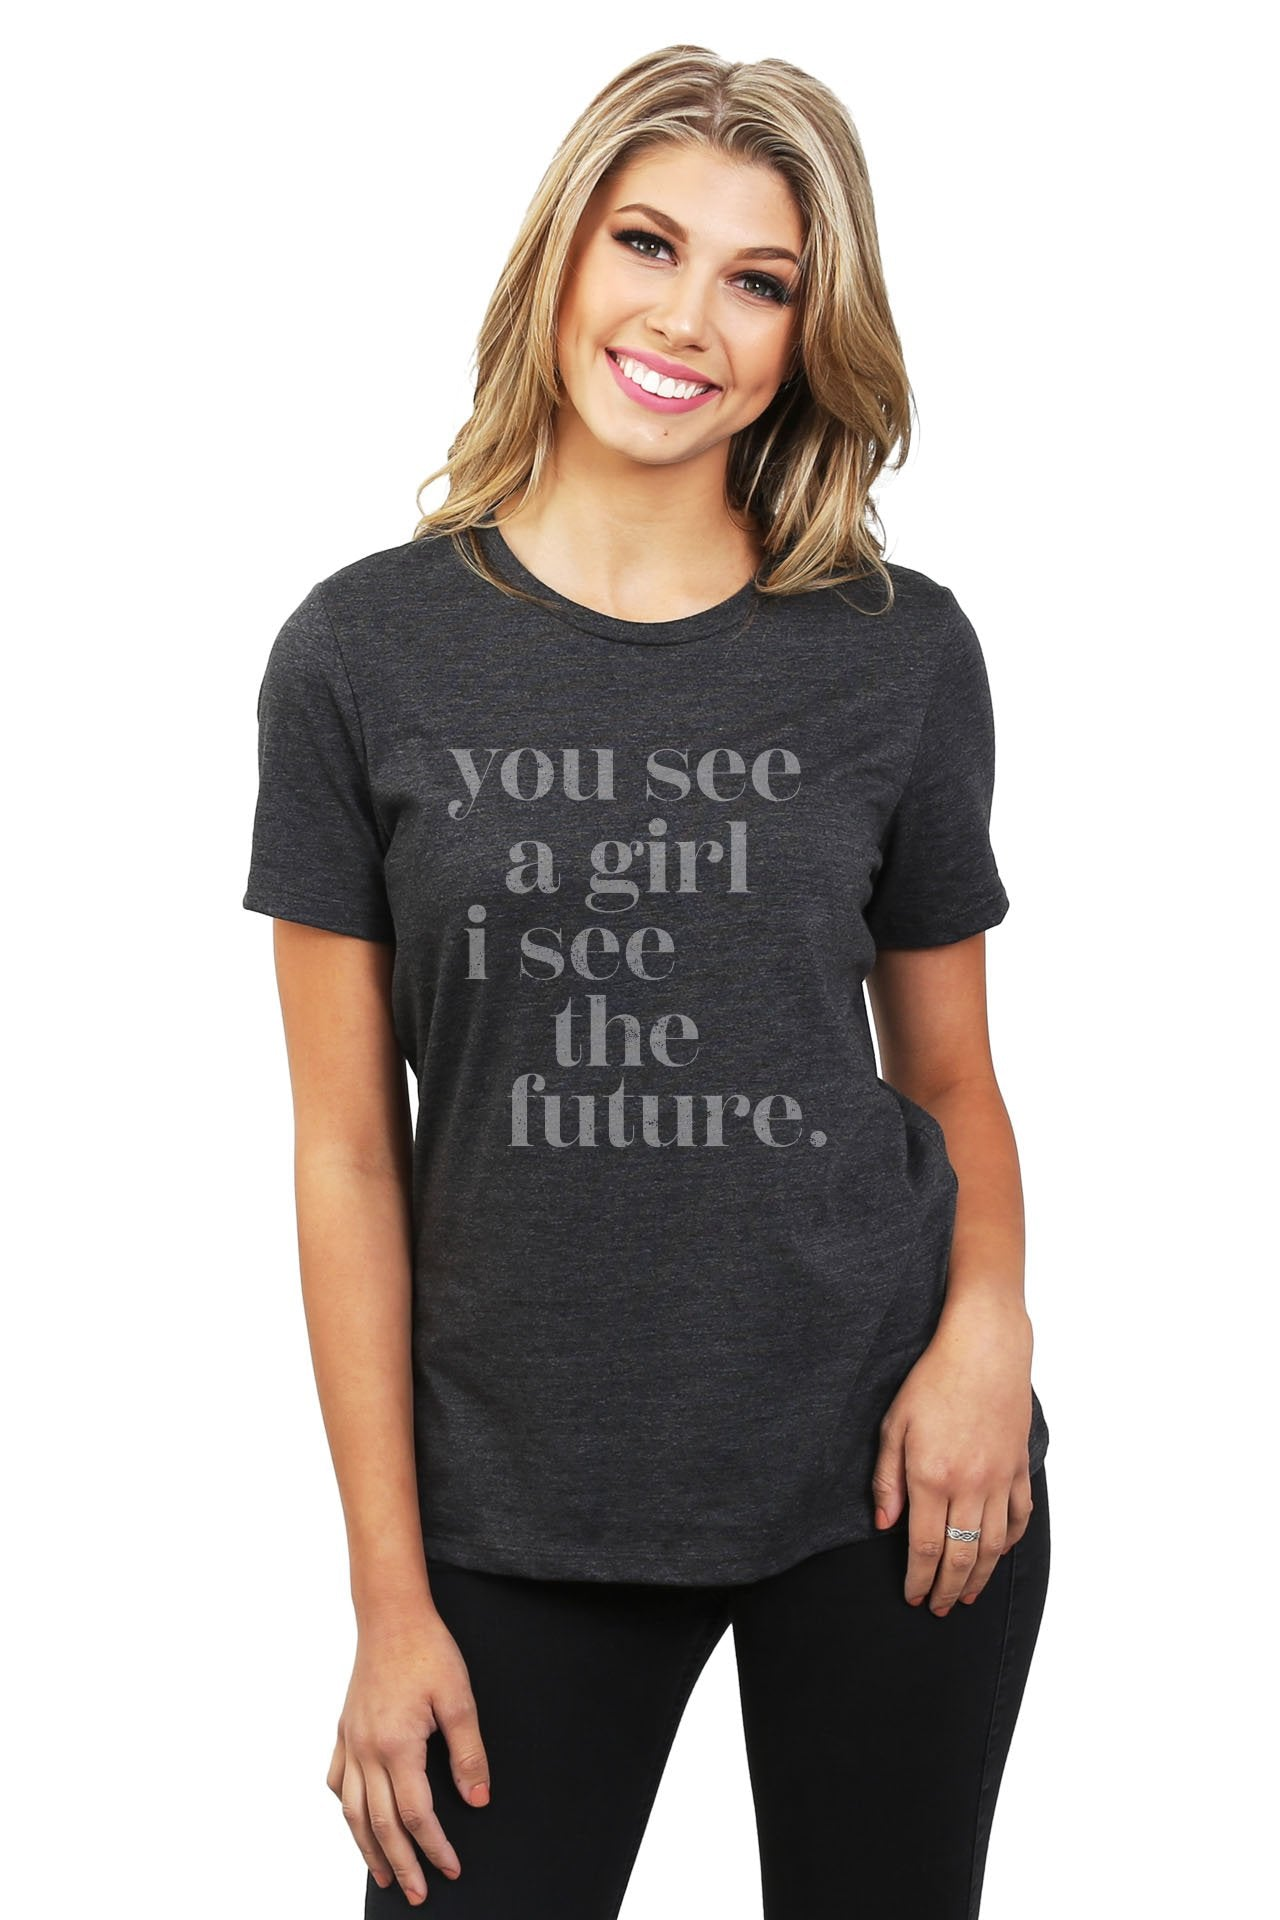 You See A Girl I See The Future Women's Relaxed Crewneck T-Shirt Top Tee Charcoal Grey